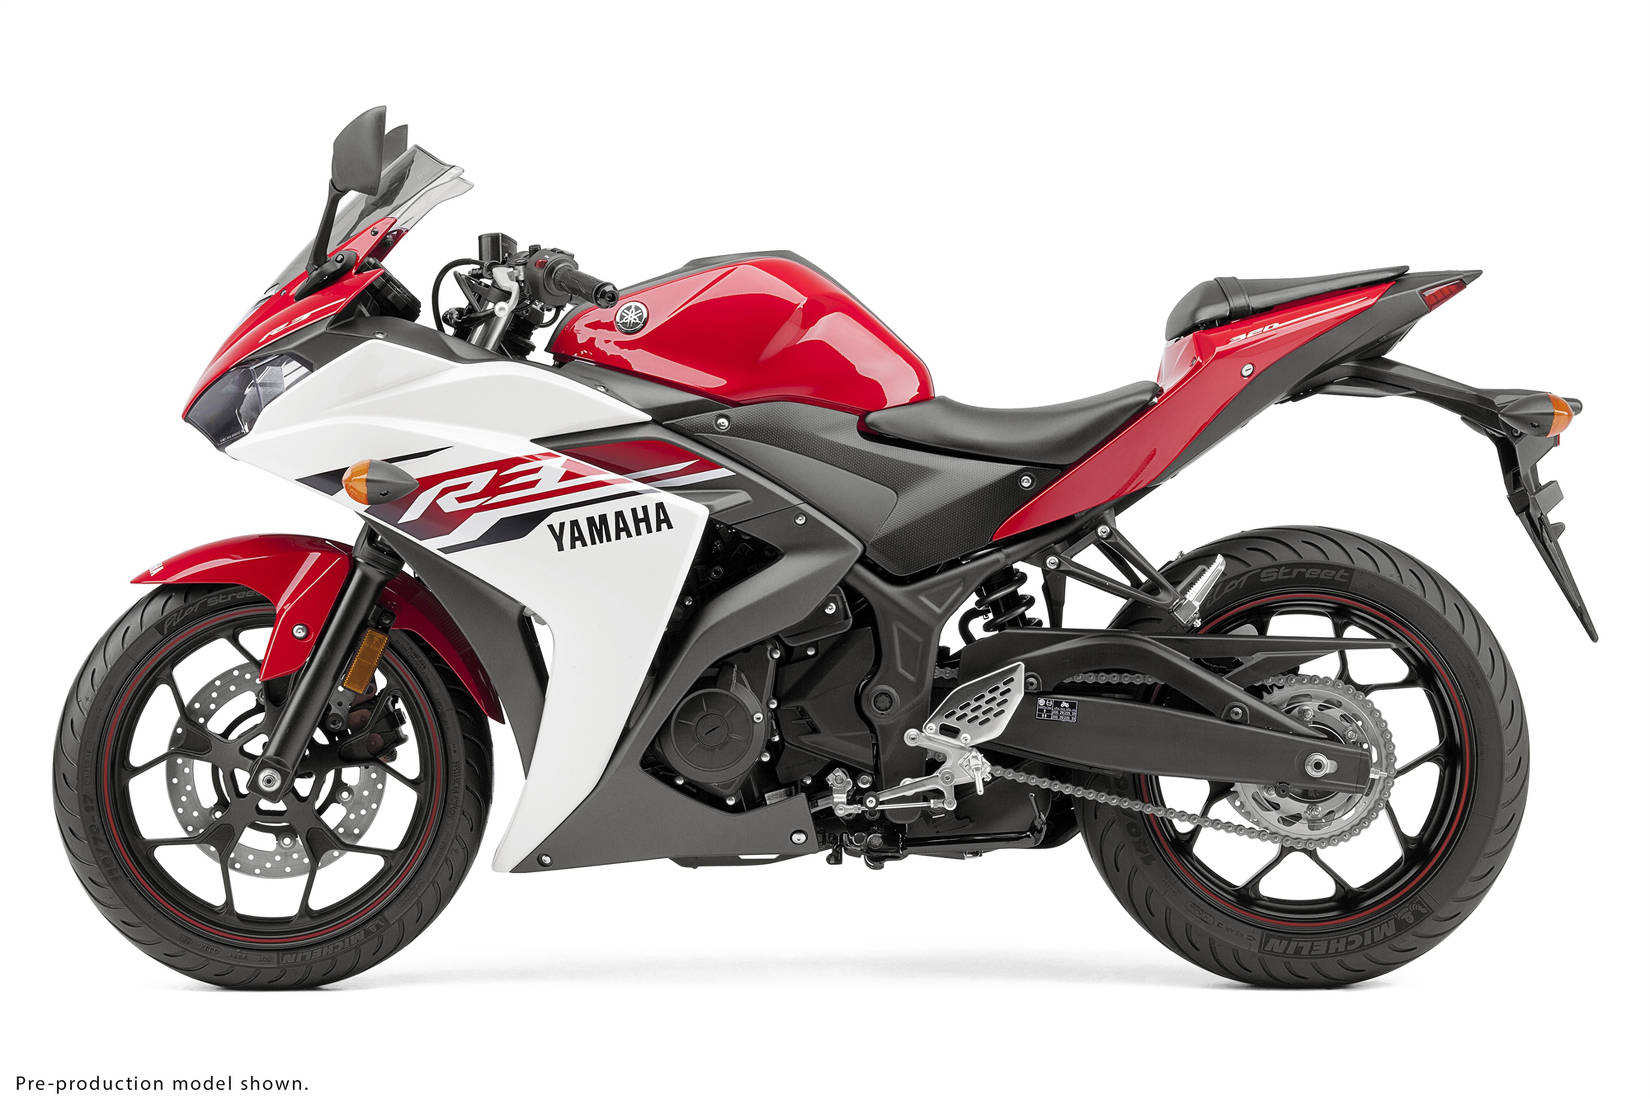 Scoop Yamaha Reveal New R3 321 Cc Twin Updated